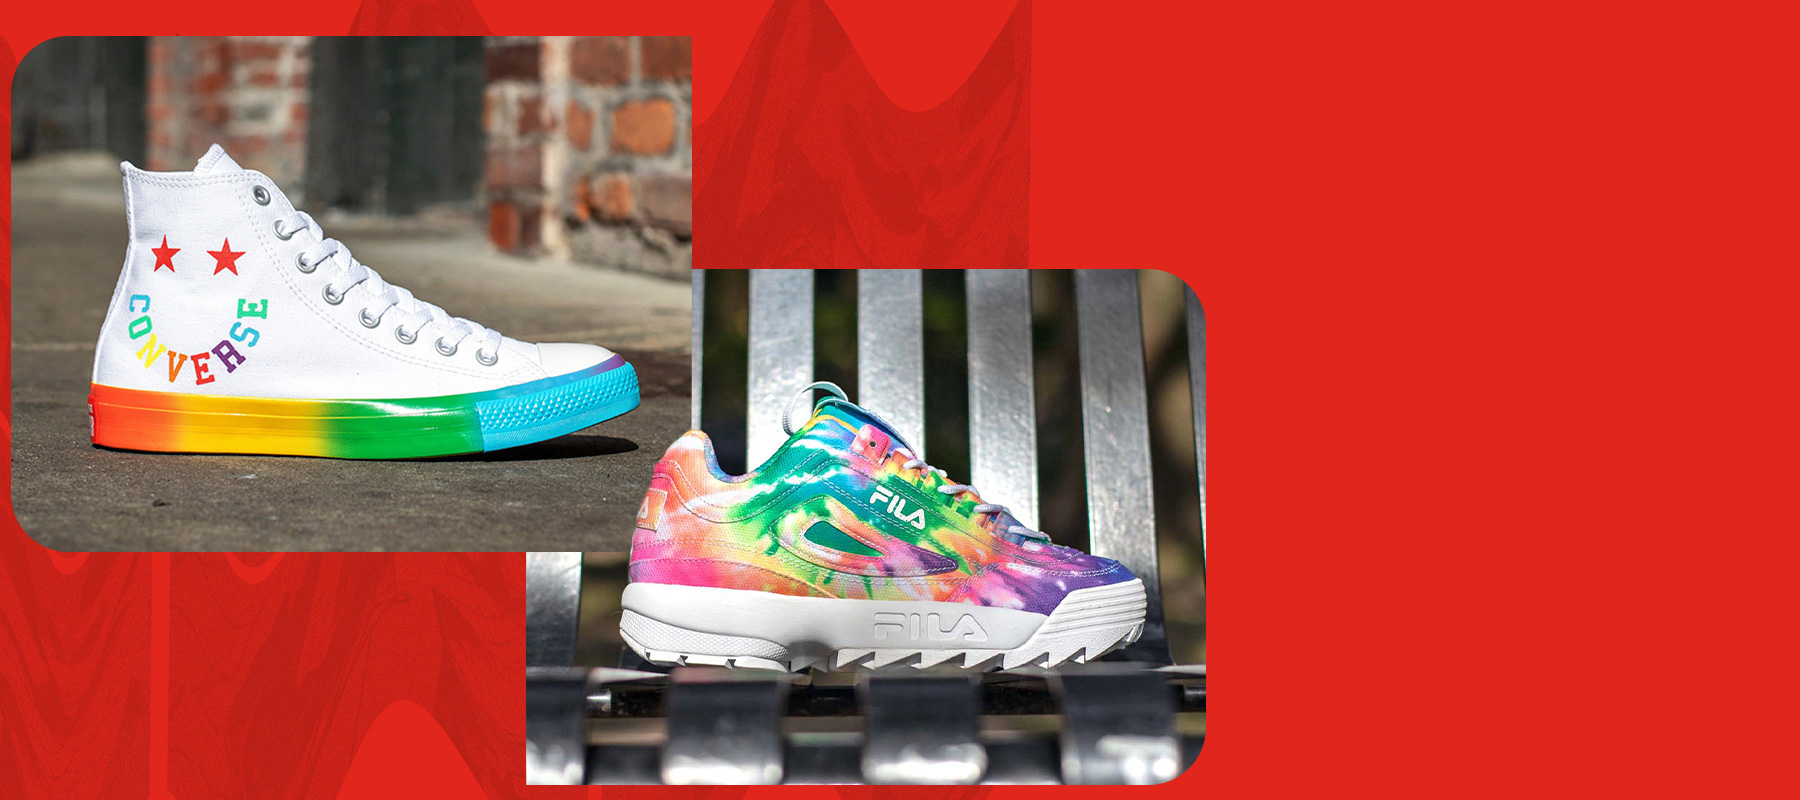 Shop sneakers from your favorite brands at Journeys